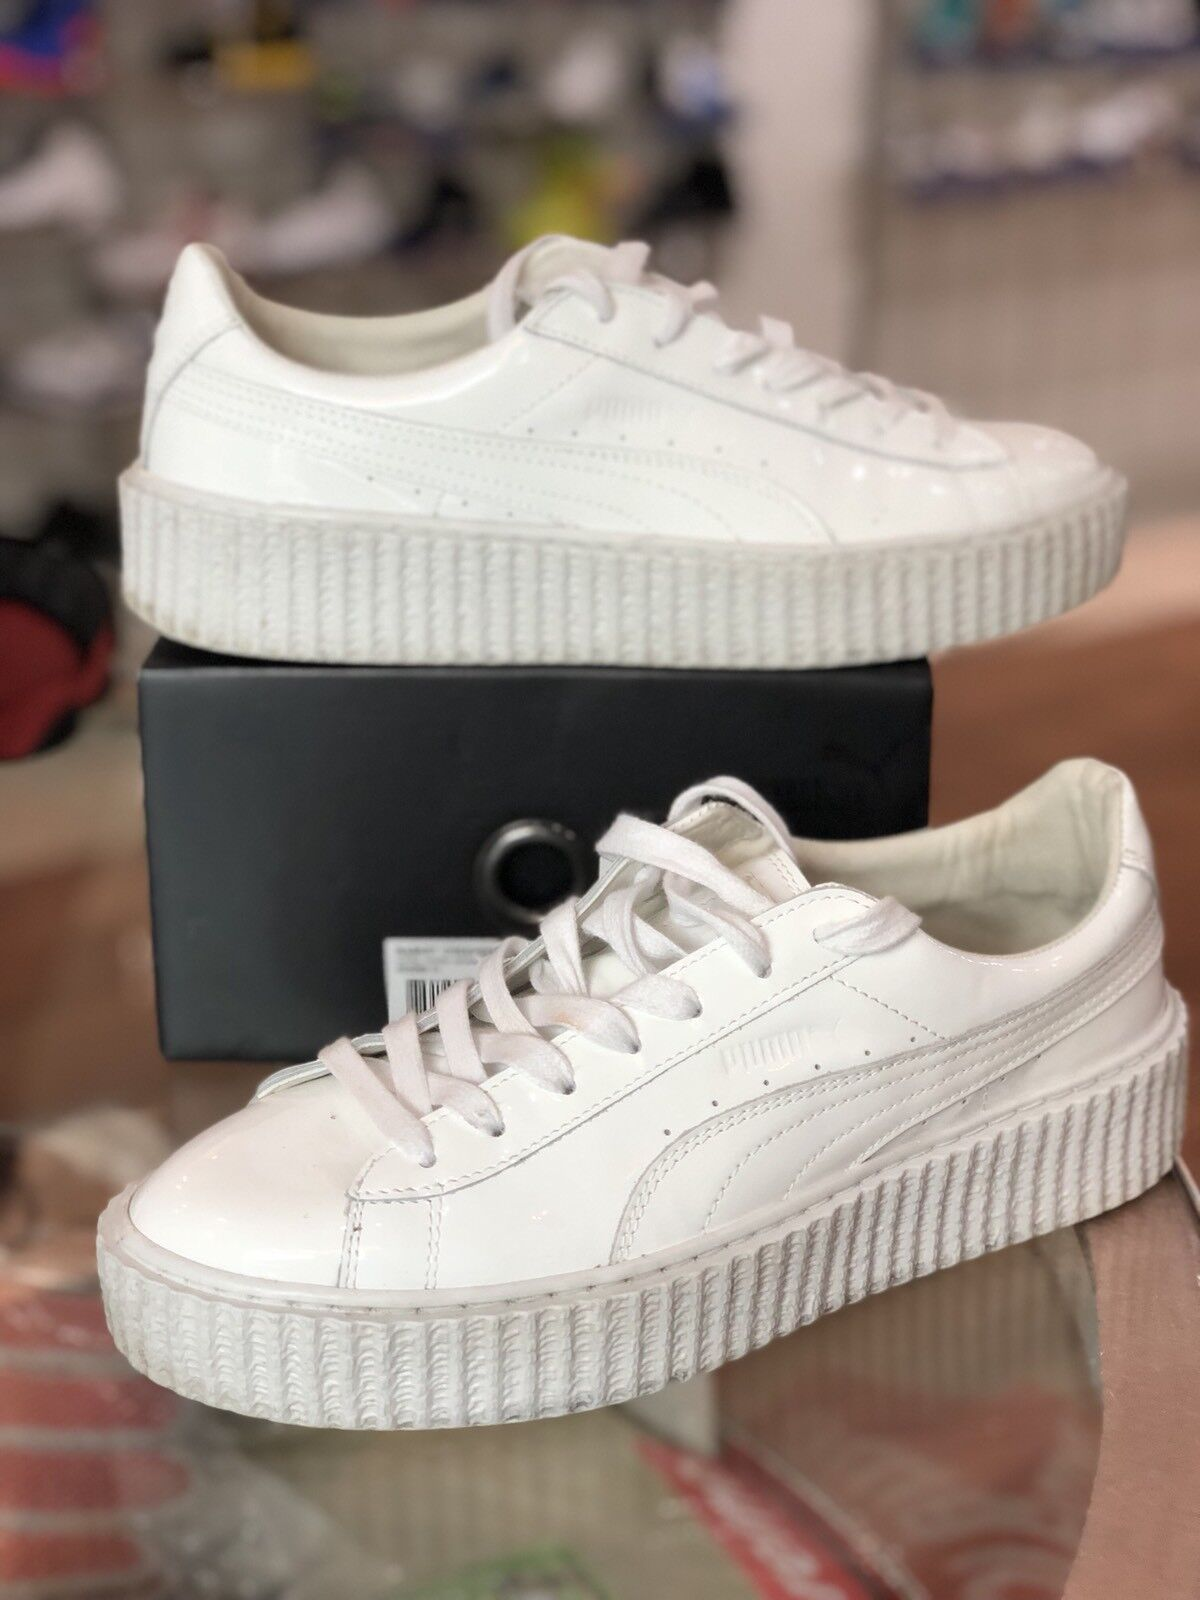 PUMA Rihanna Fenty Basket Creepers SIZE 10 White Glo Triple White US Women's